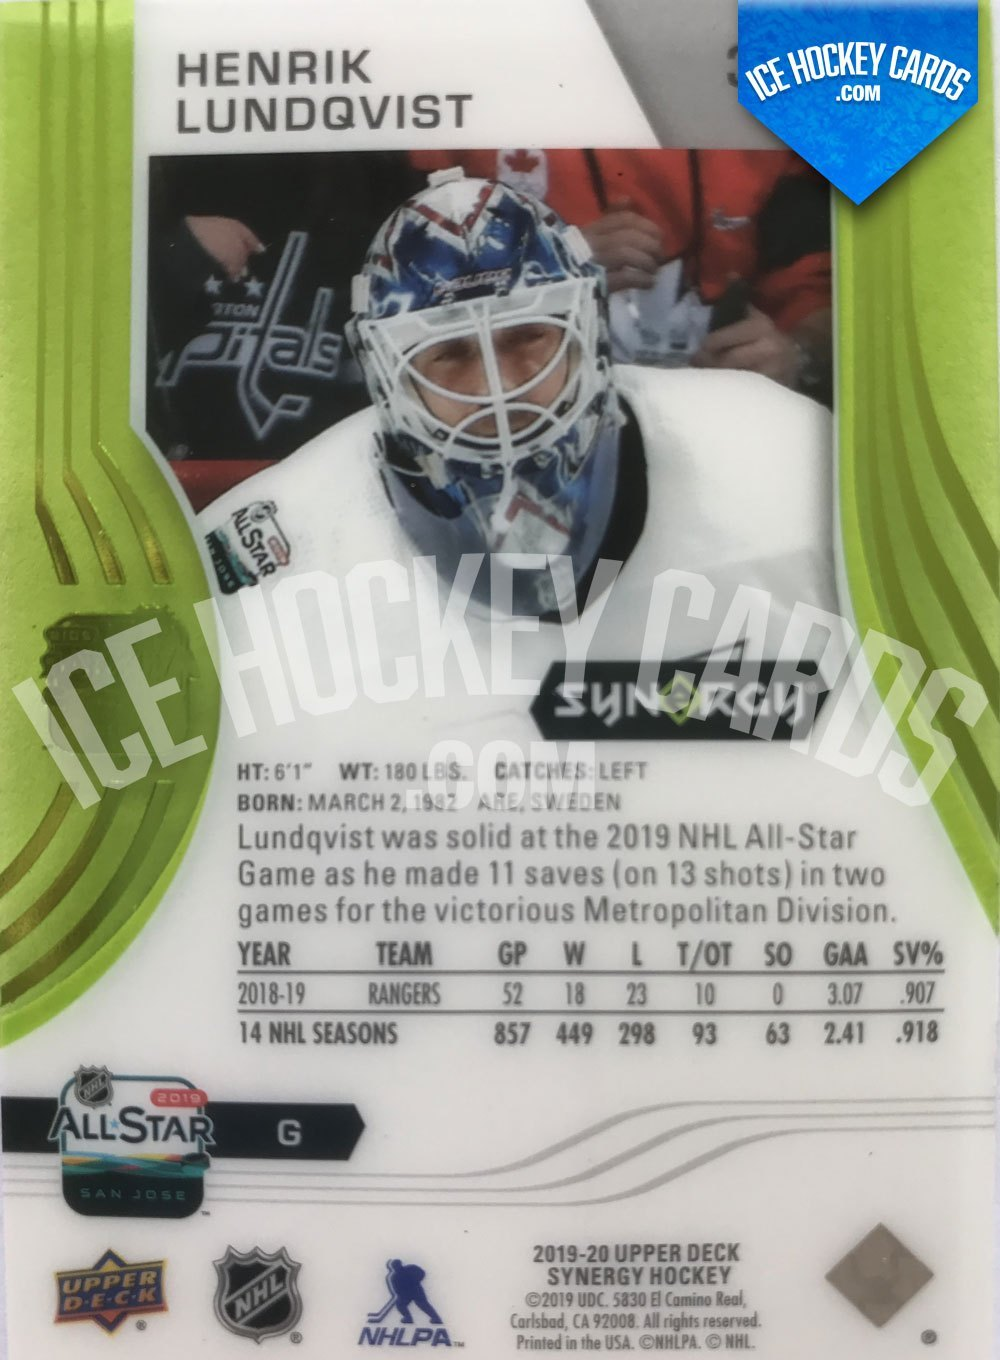 Upper Deck - Synergy 19-20 - Henrik Lundqvist All Star Game 2019 back